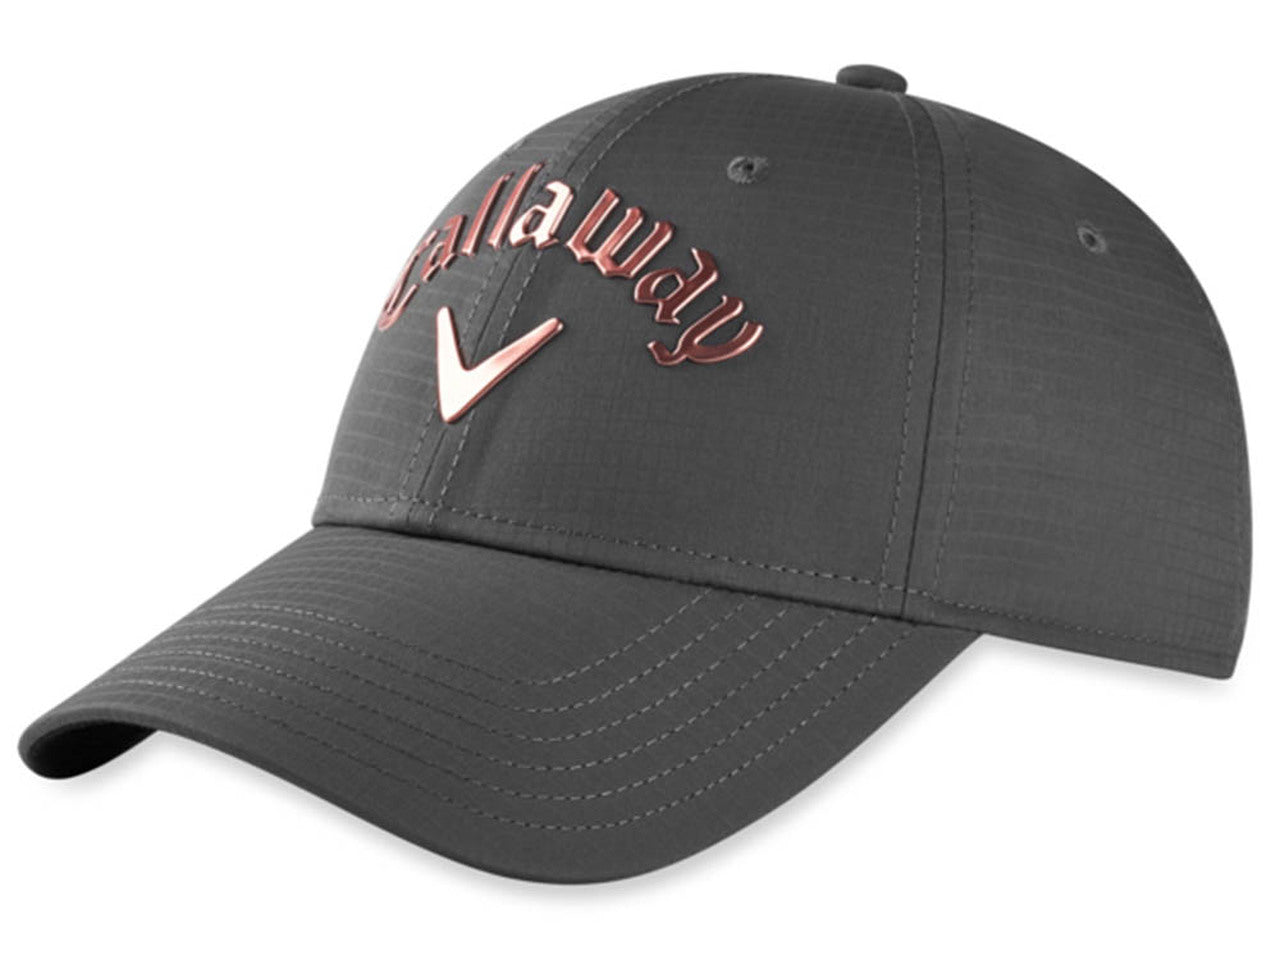 Callaway Womens Liquid Metal Cap